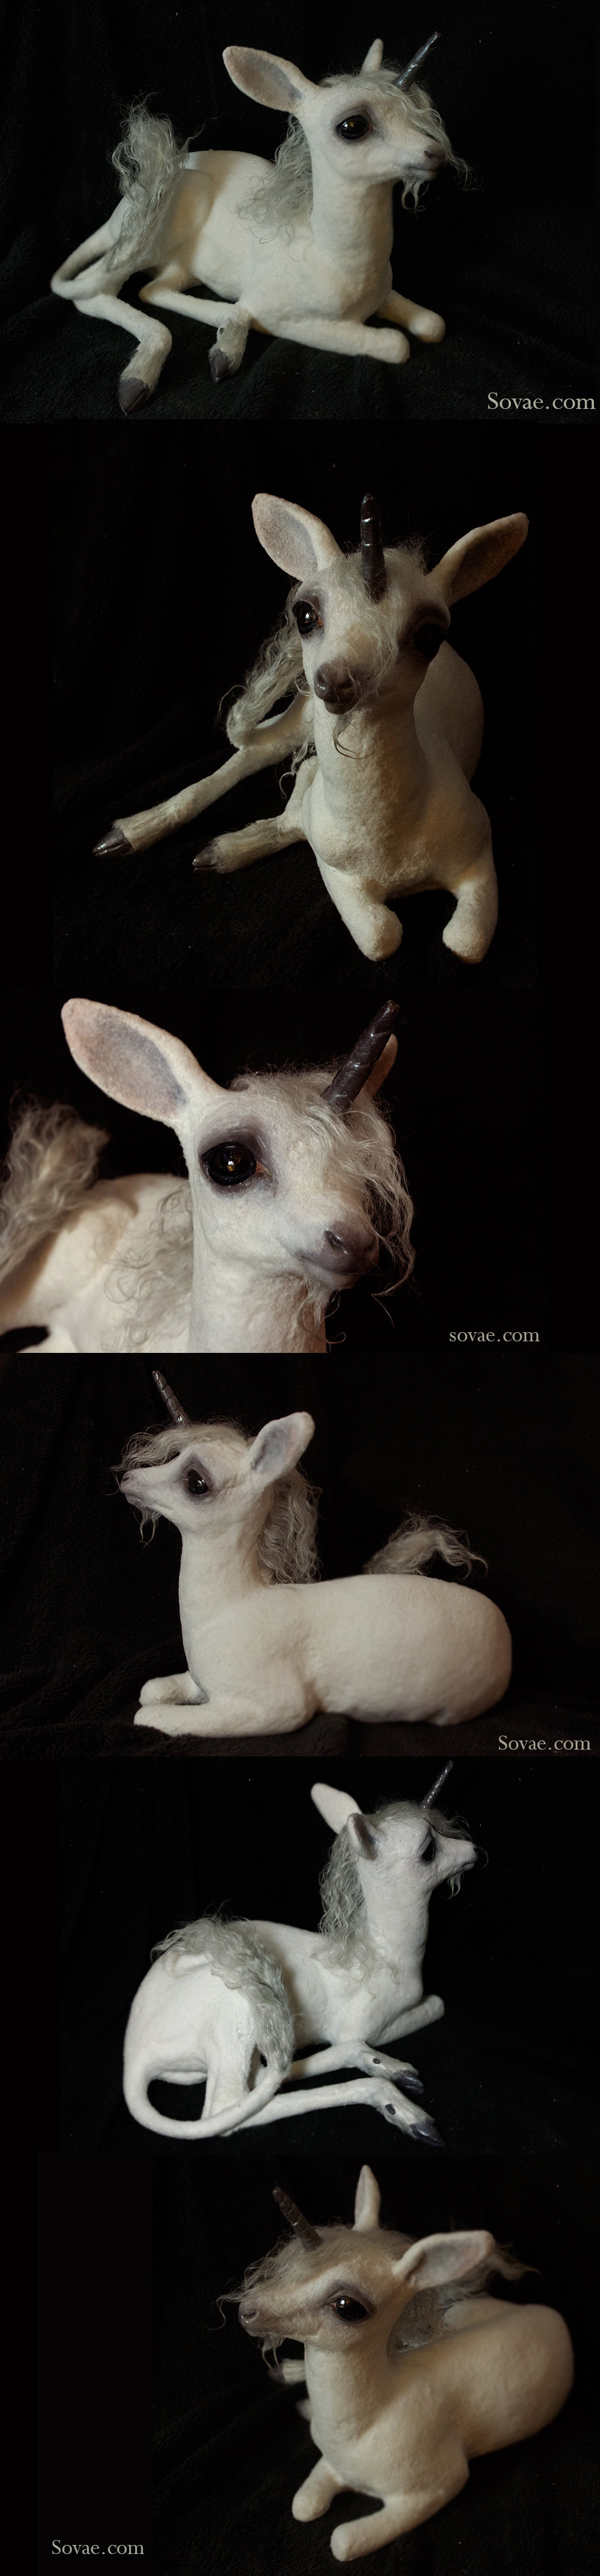 Baby Unicorn Sculpture 2013 by SovaeArt